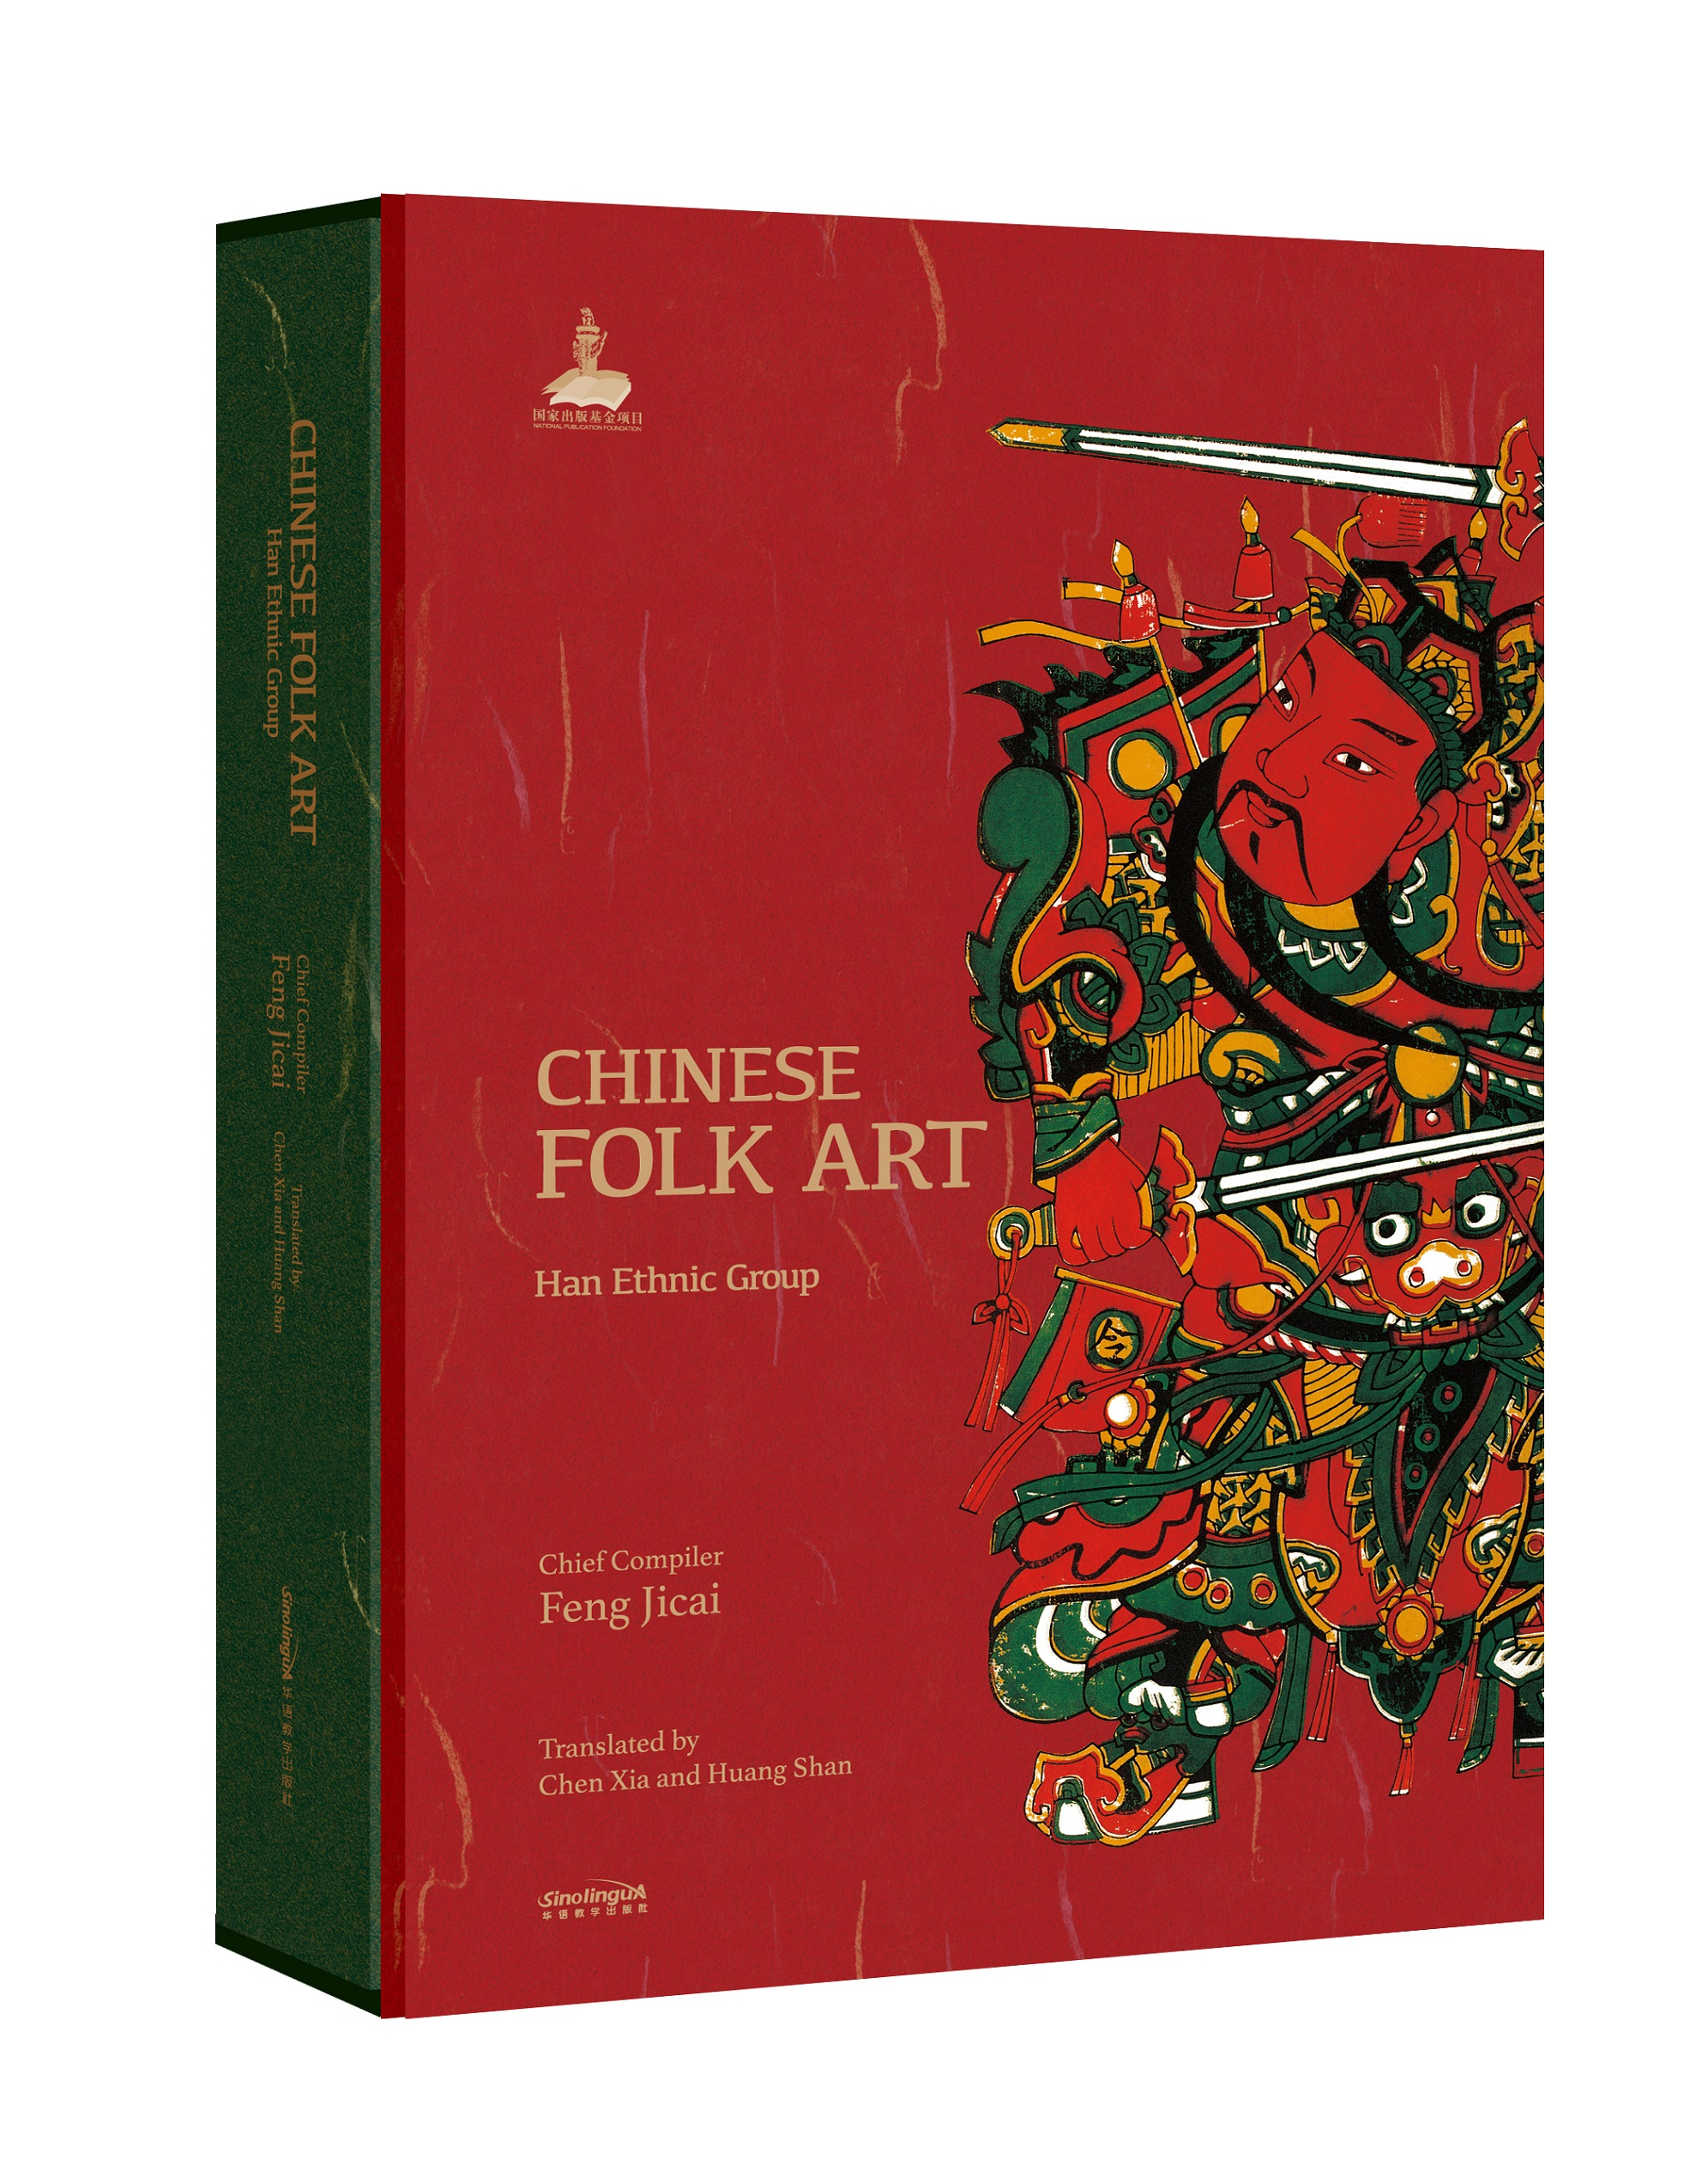 Chinese Folk Art(Han Ethnic Group)